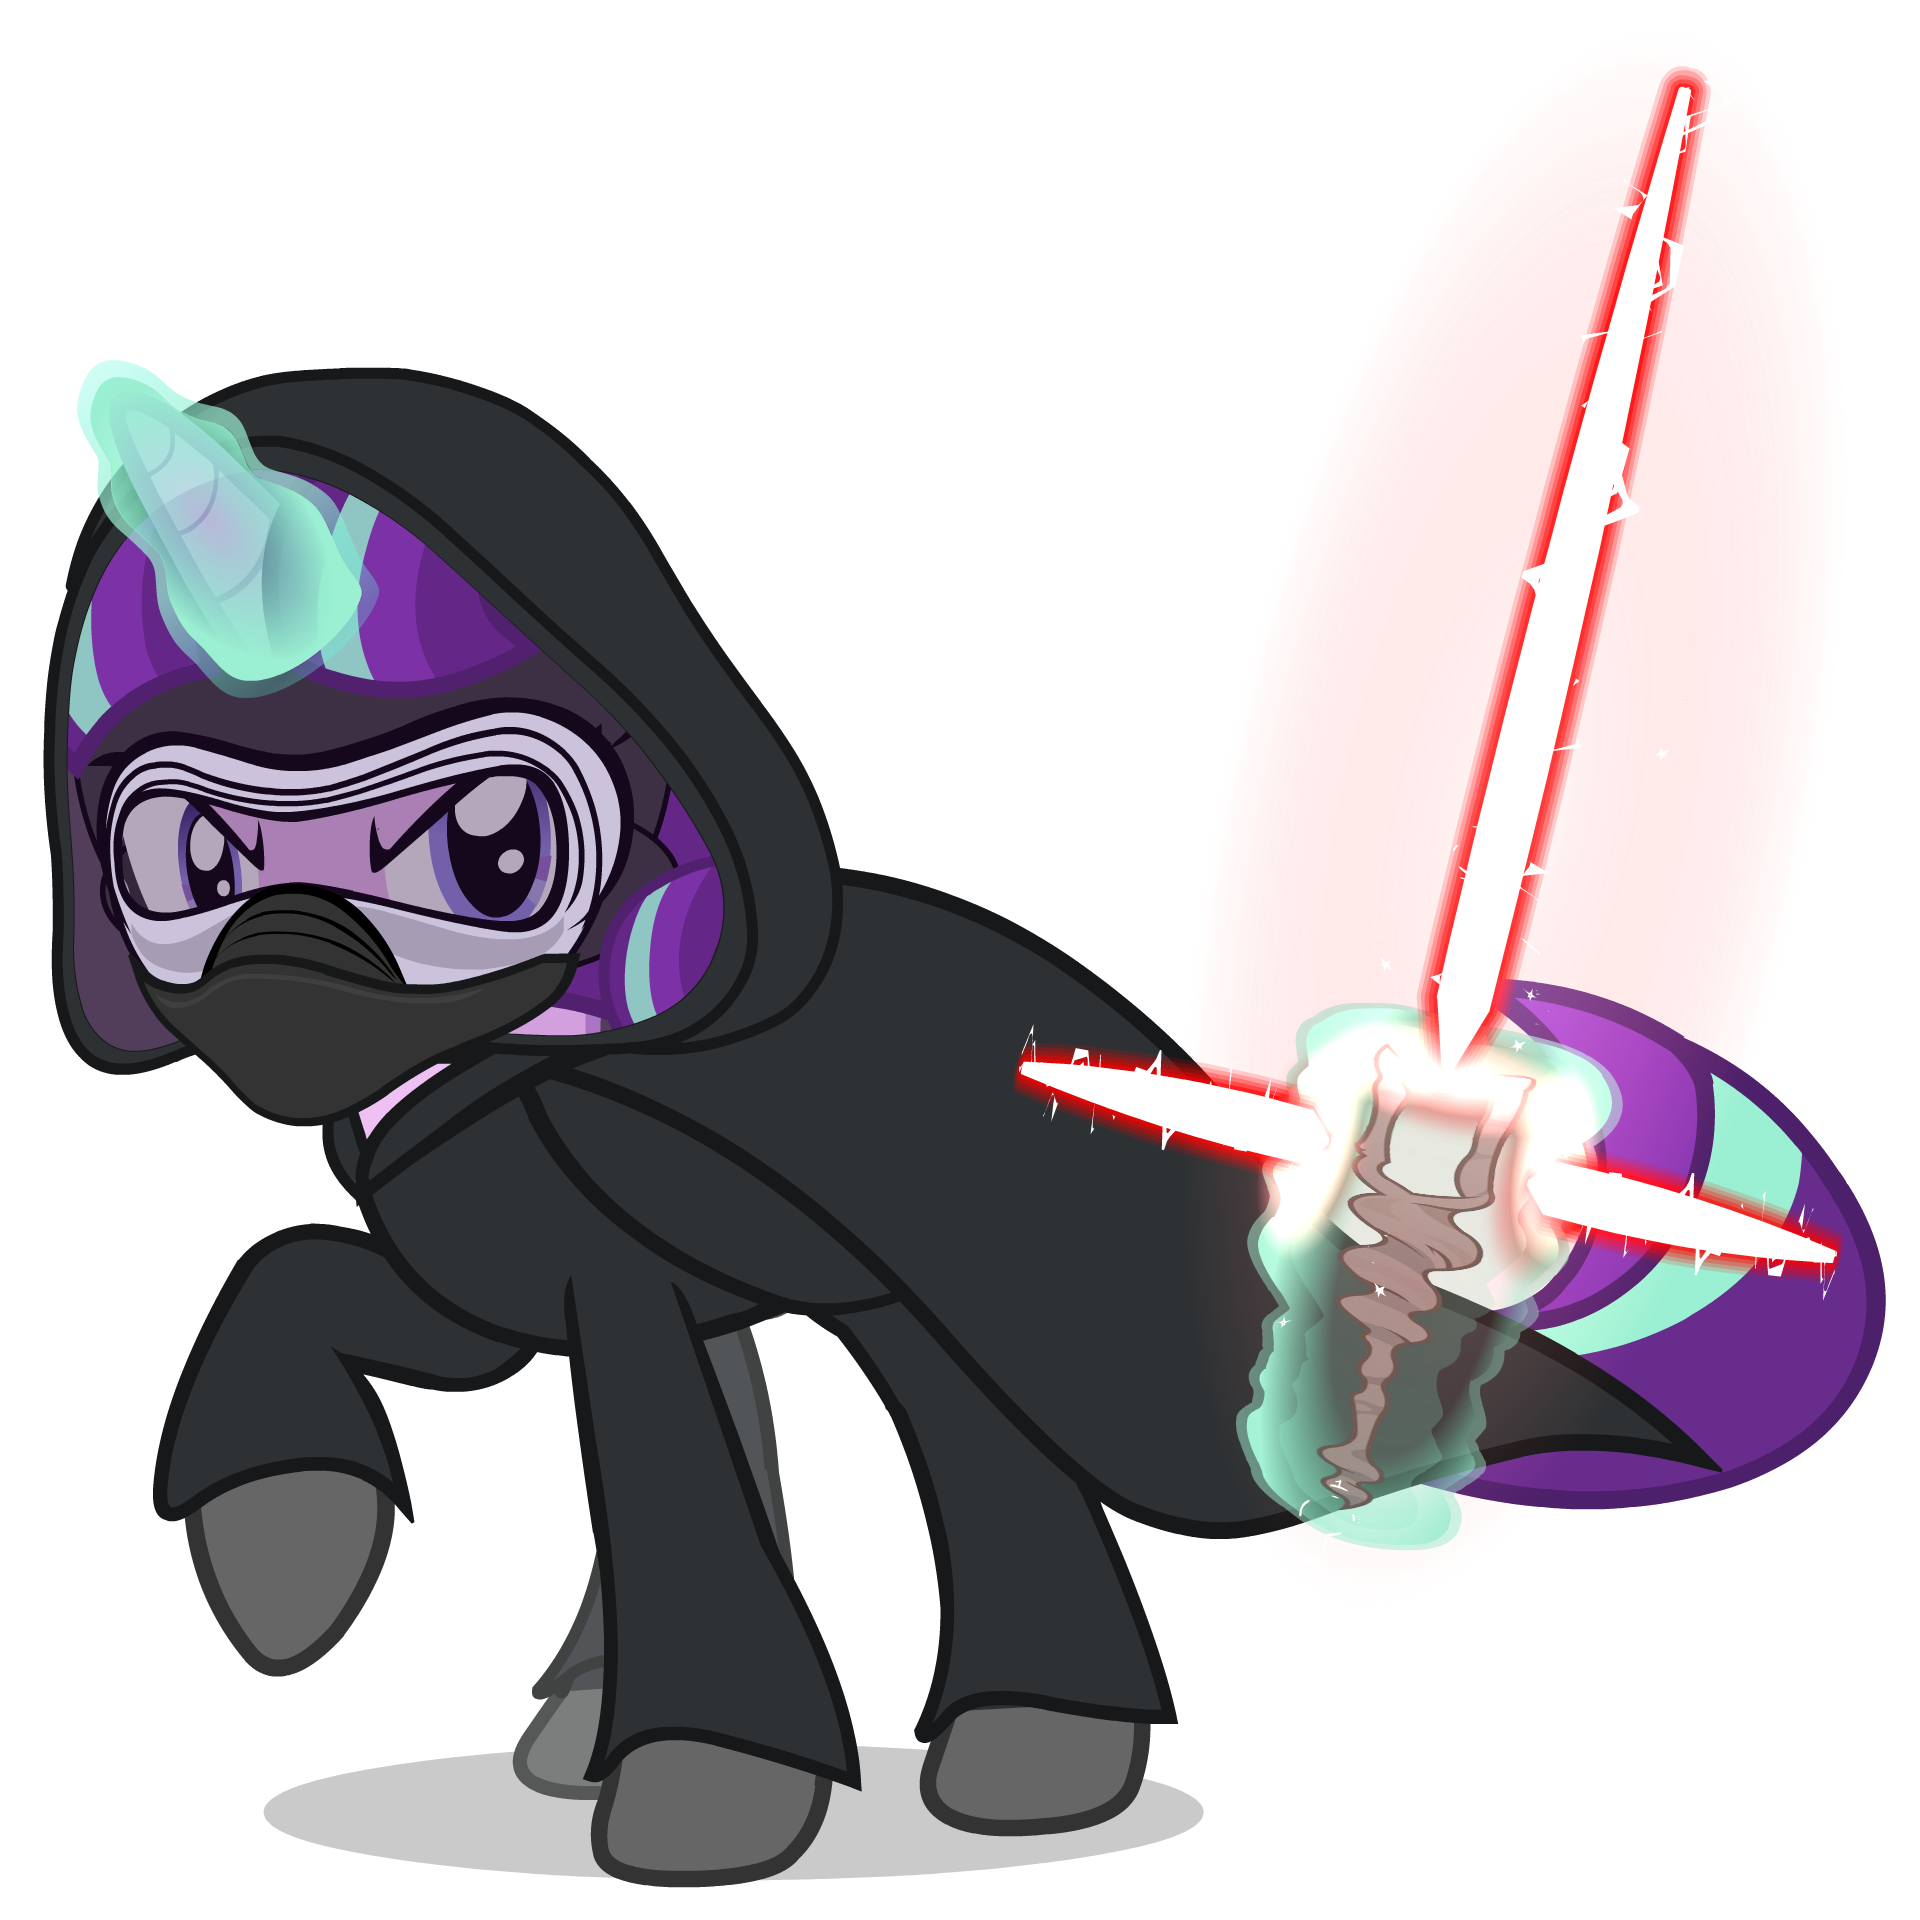 Starlight Glimmer as Kylo Ren Mask and New Saber by MrFlabbergasted 1920x1920